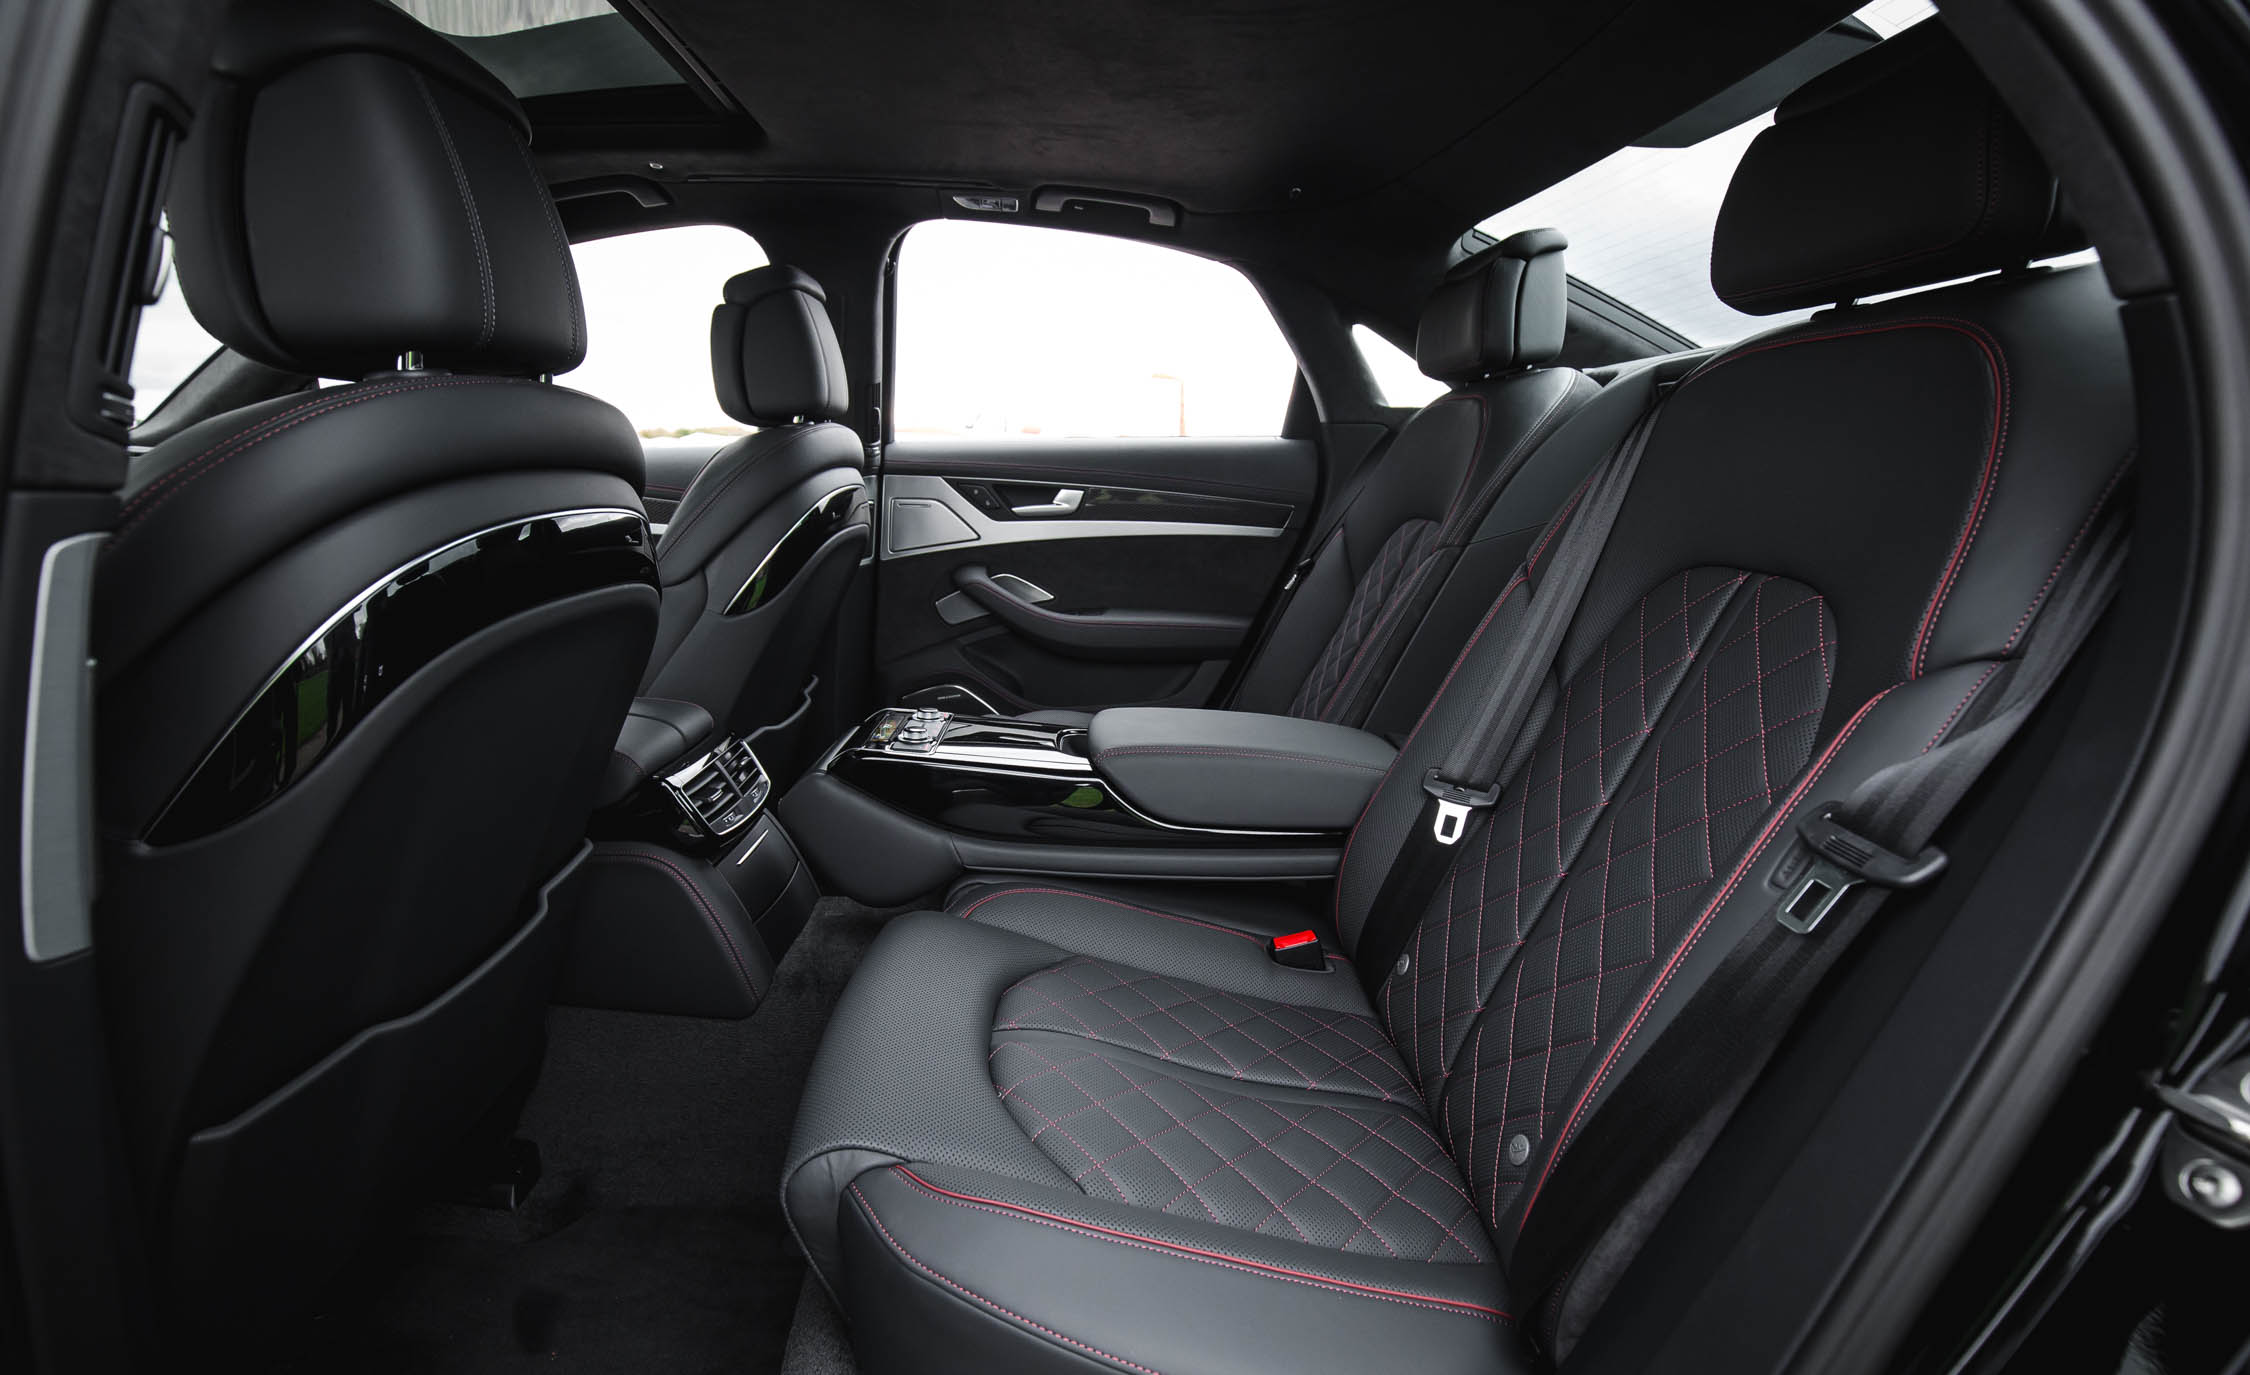 2017 Audi S8 Plus Interior Seats Rear Passenger (Photo 20 of 36)